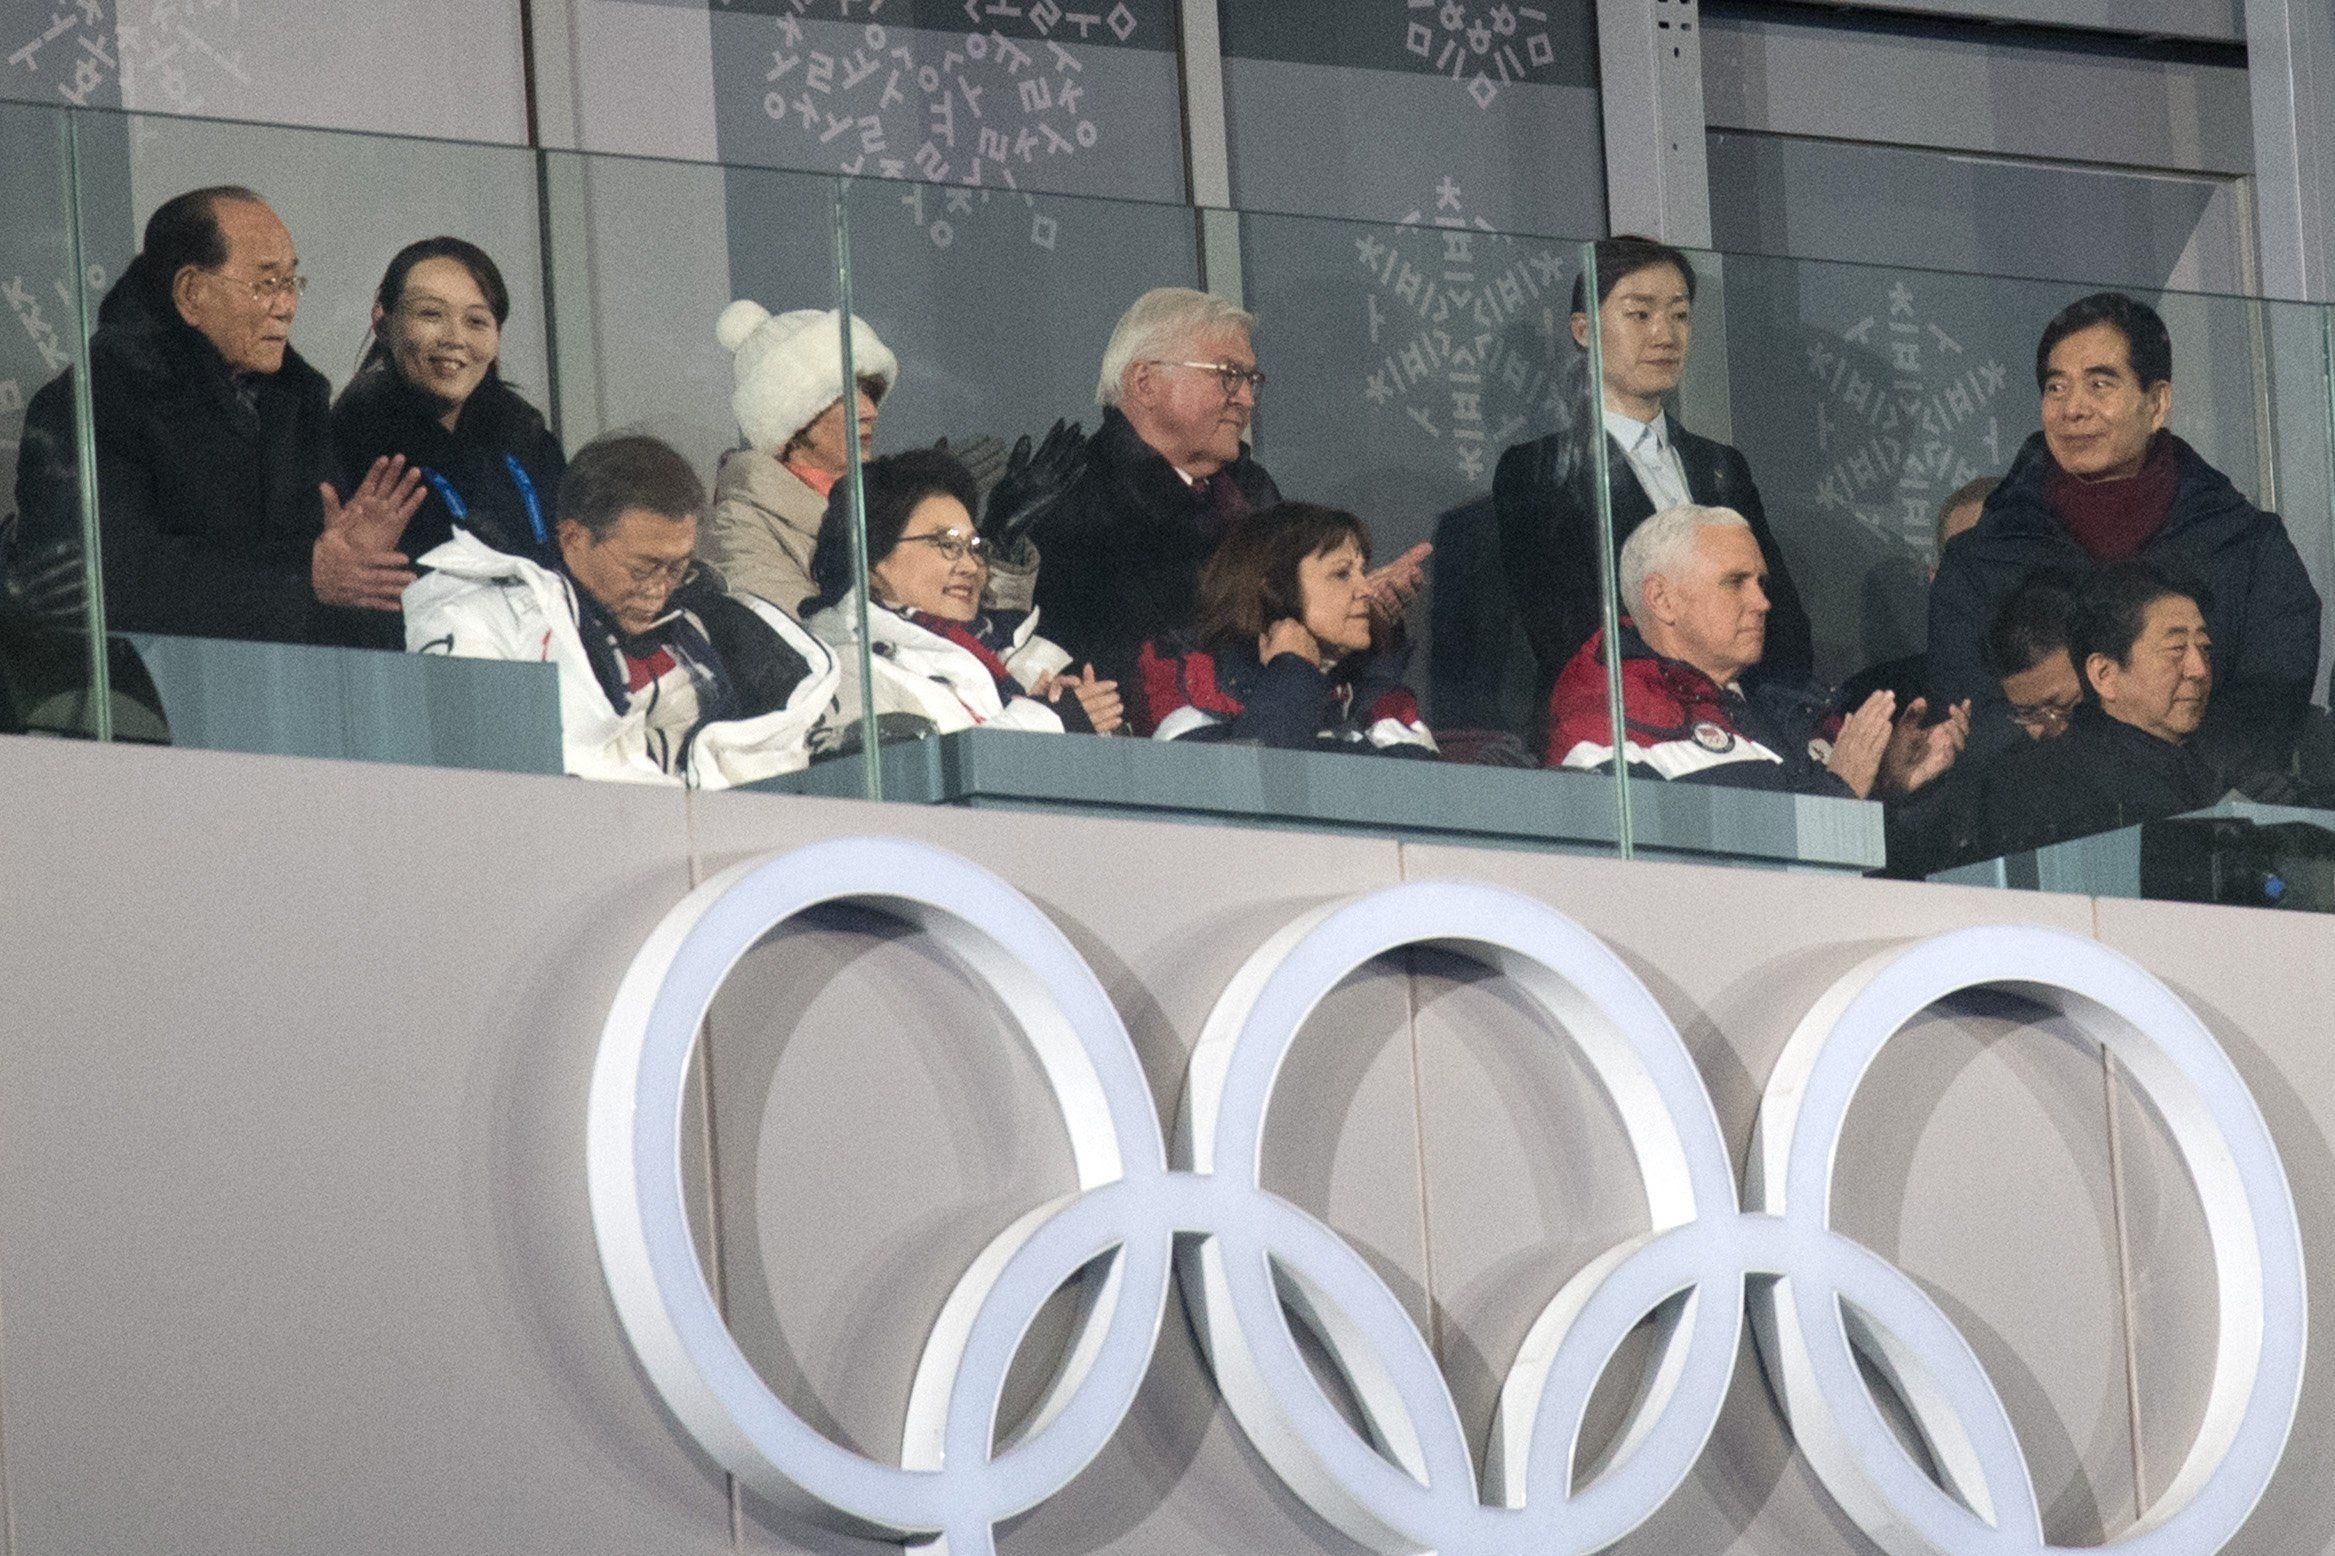 Vice President Vice President Mike Pence watches the opening ceremony of the Pyeong Chang Winter Olympics along with Kim Yo-jong the sister of North Korean leader Kim Jong Un